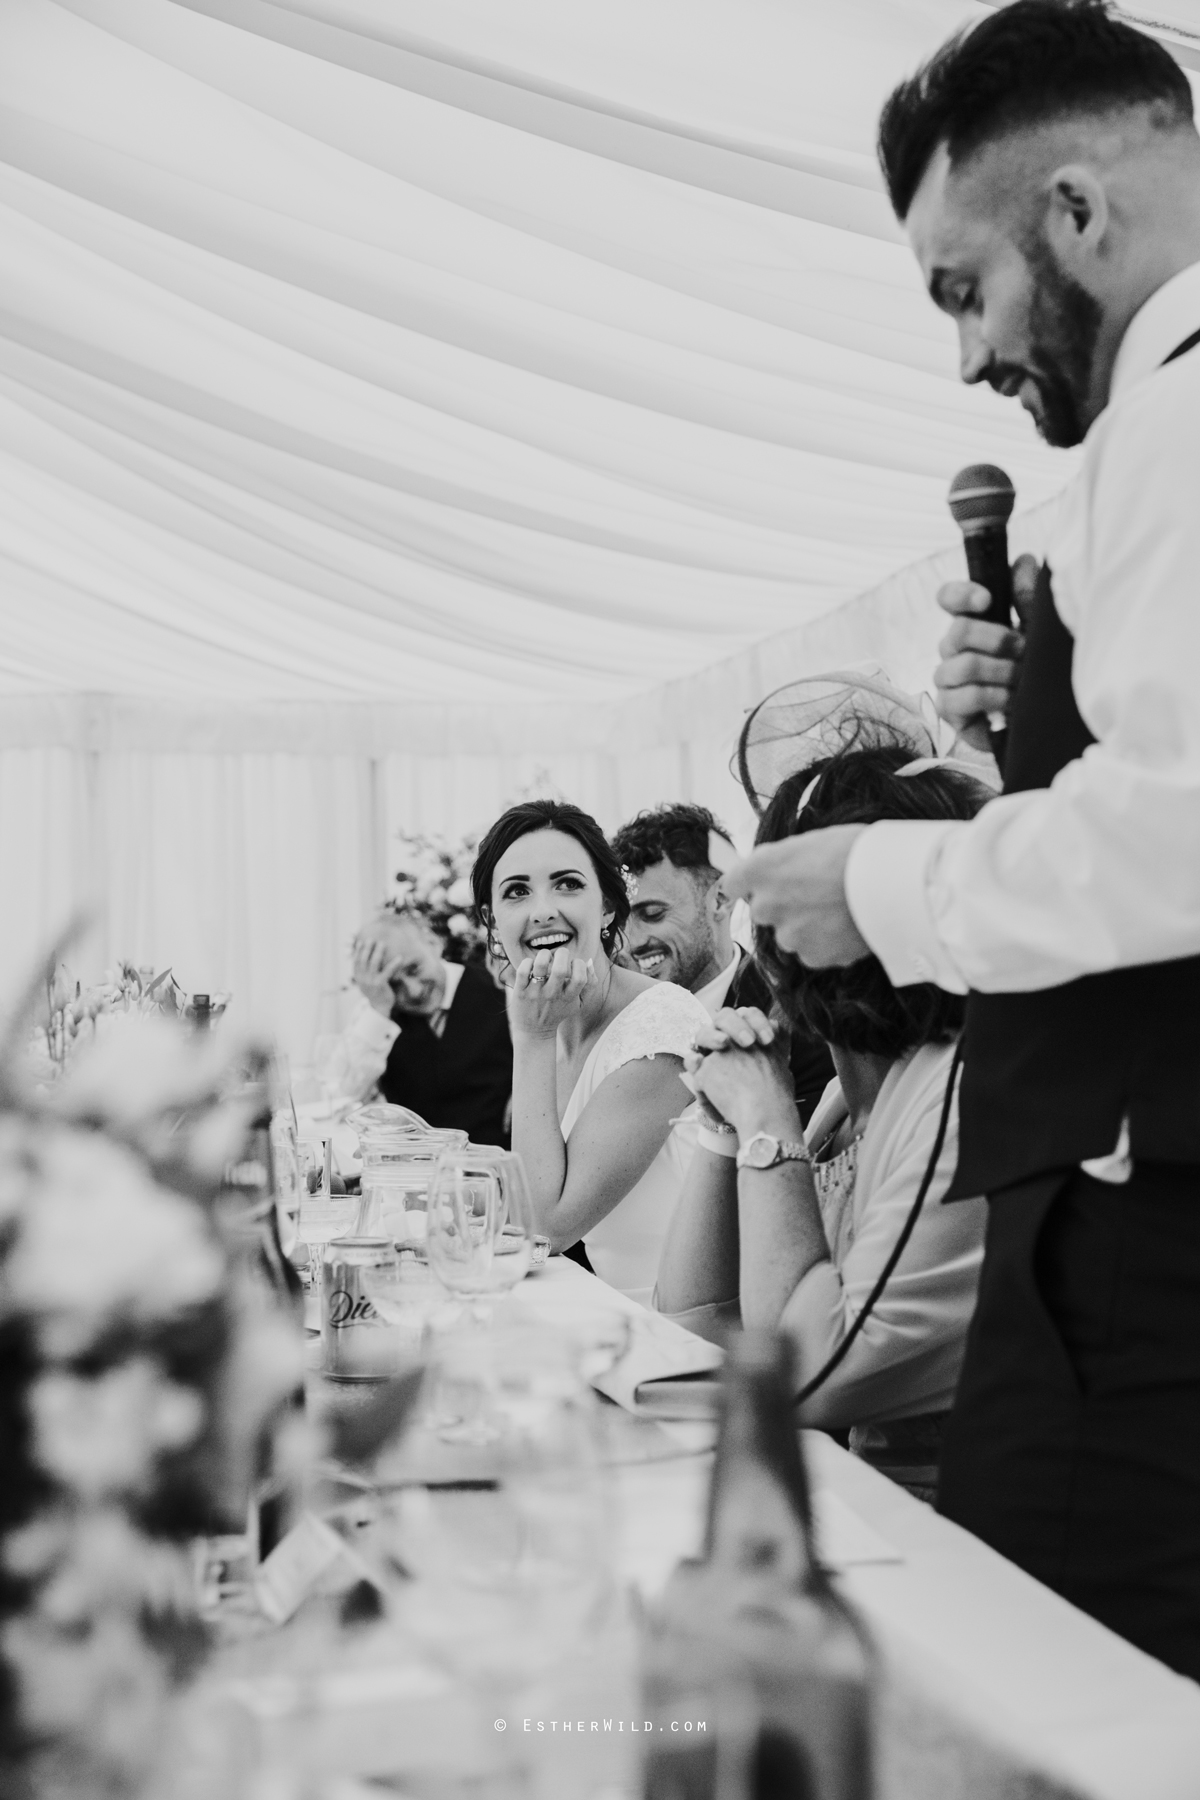 Wootton_Wedding_Copyright_Esther_Wild_Photographer_IMG_2766-2.jpg